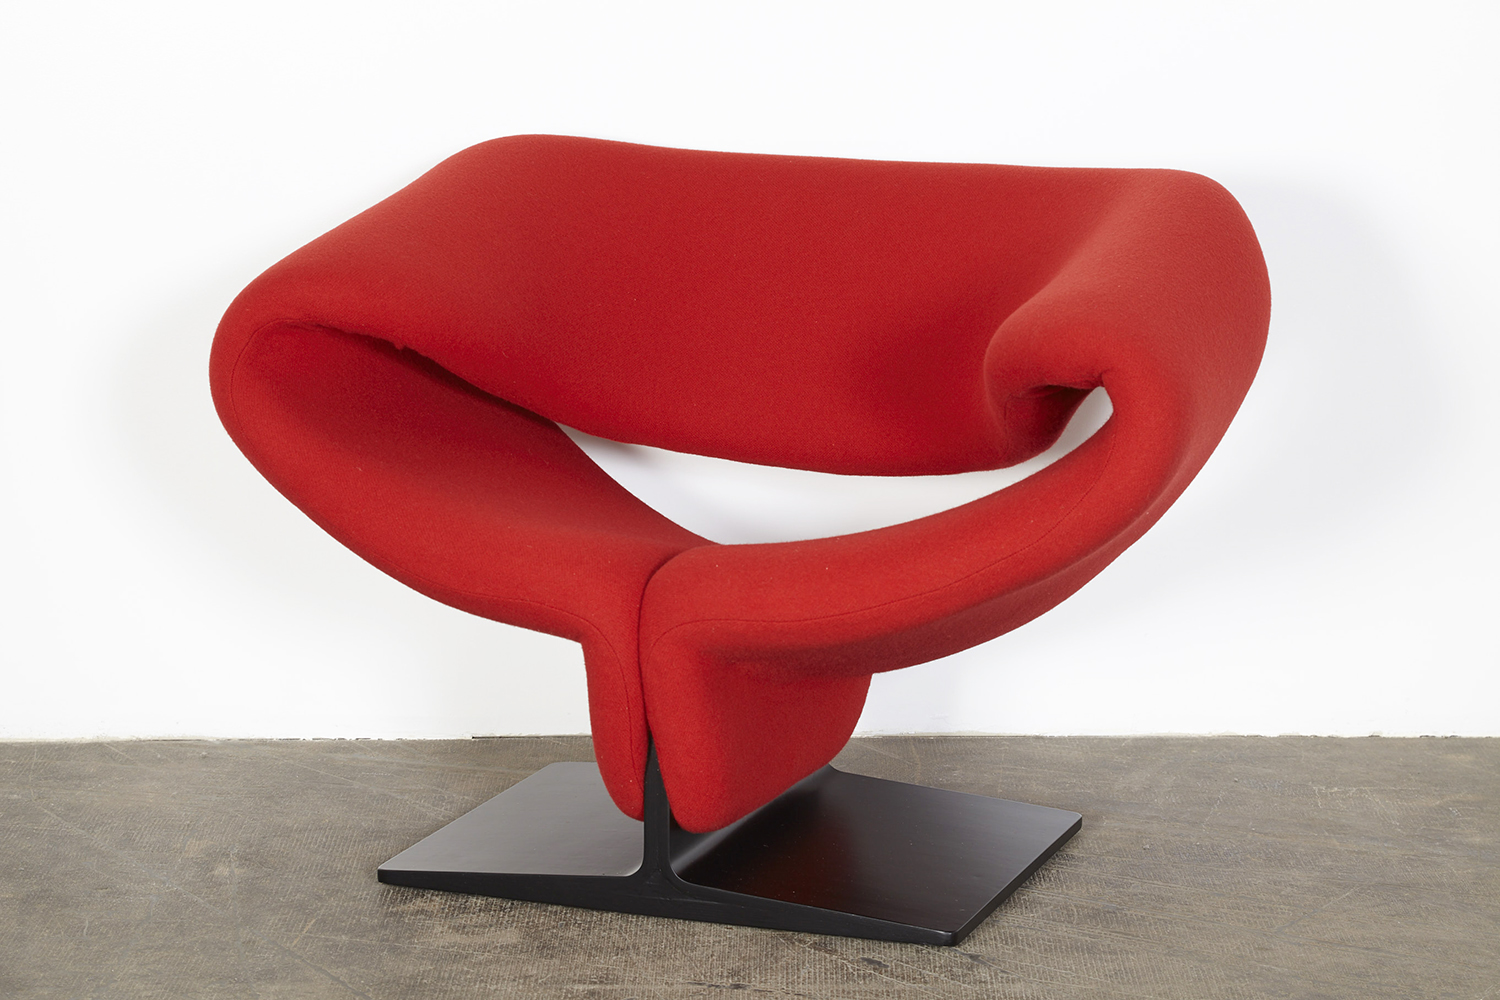 Best Reading Chair For Bad Back Classic Design Before And After Pierre Paulin Ribbon Chair